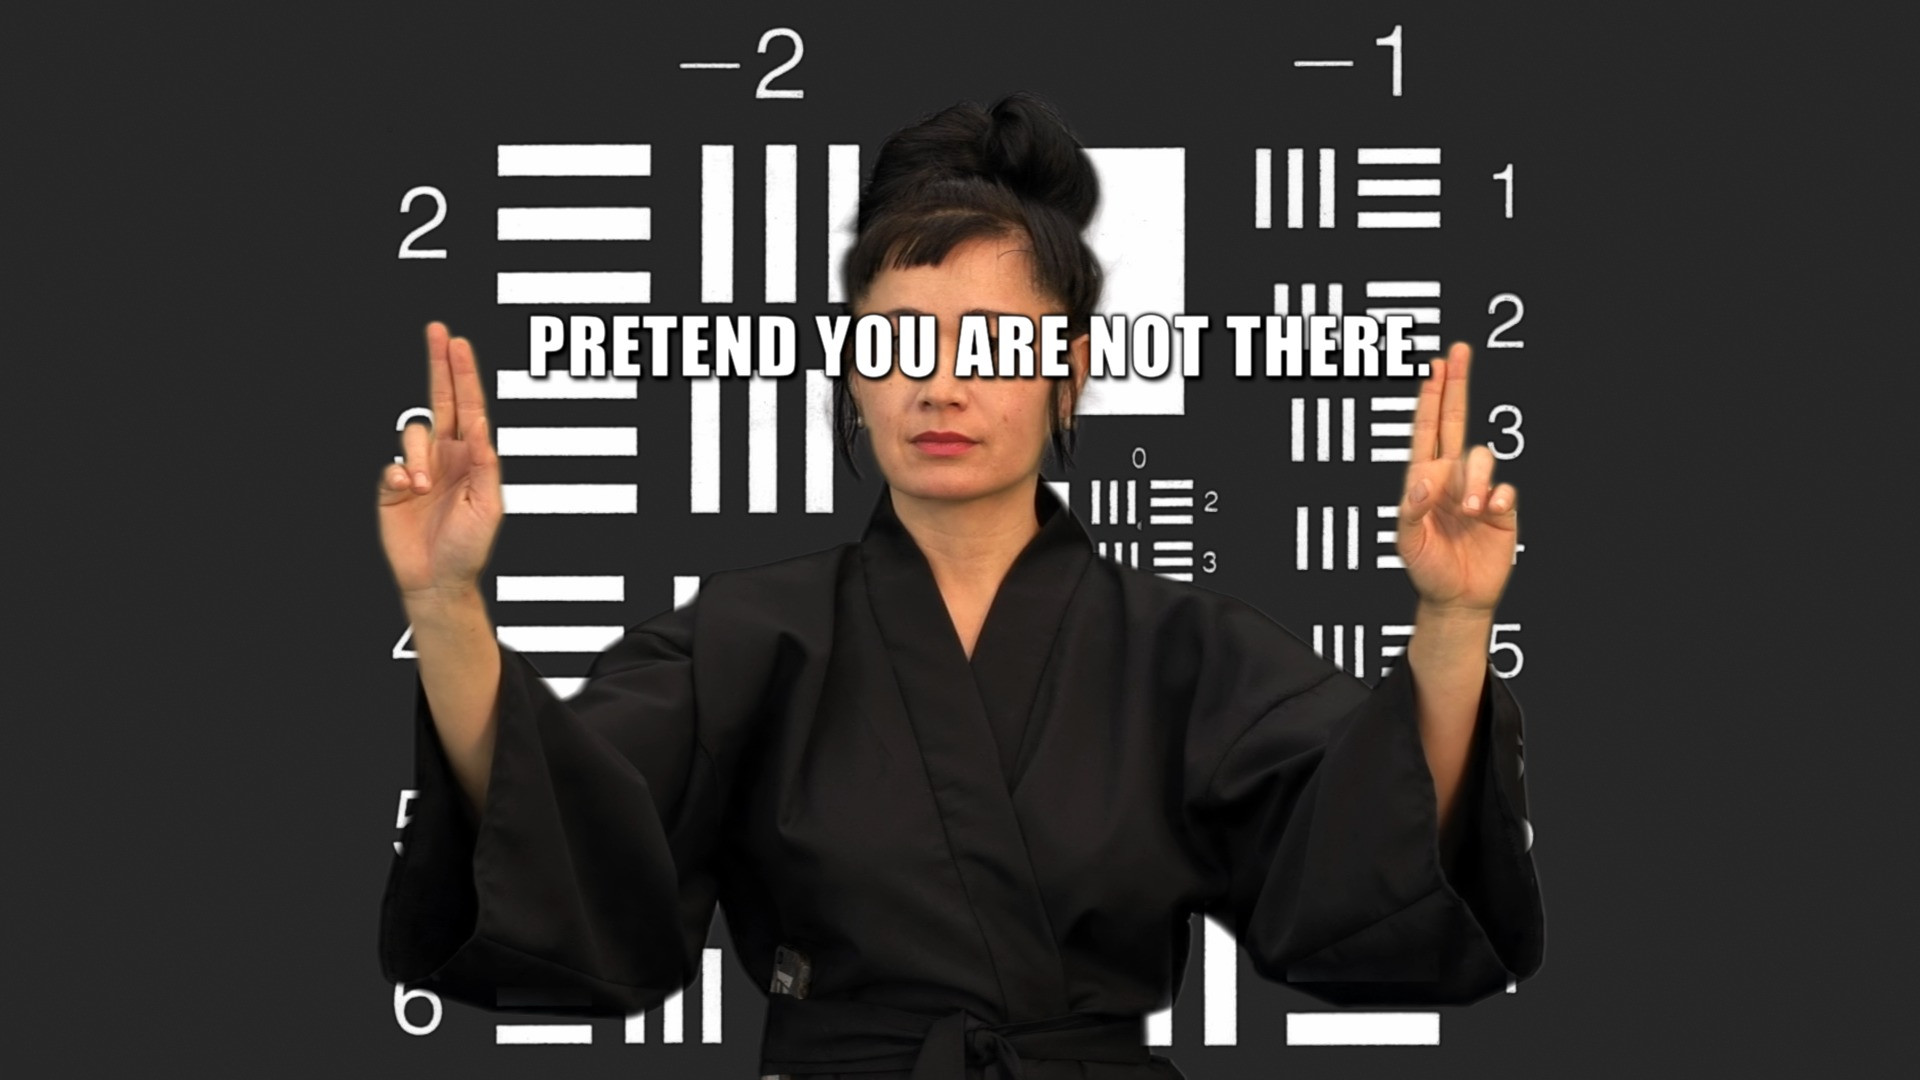 Hito Steyerl. How Not to Be Seen: A Fucking Didactic Educational .MOV File. 2013